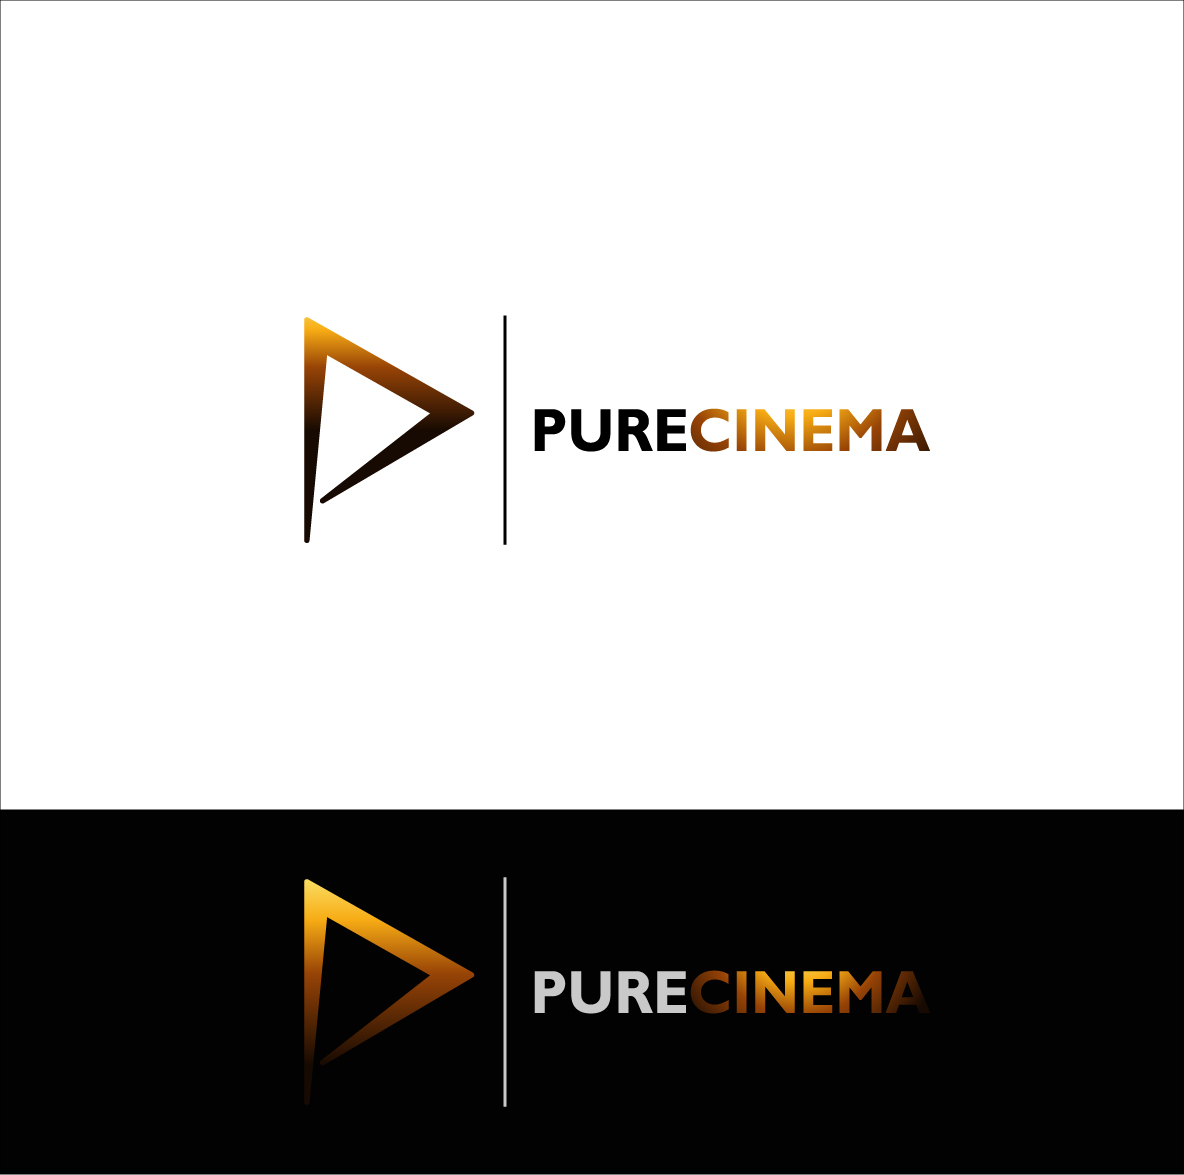 Logo Design by zoiDesign - Entry No. 103 in the Logo Design Contest Imaginative Logo Design for Pure Cinema.